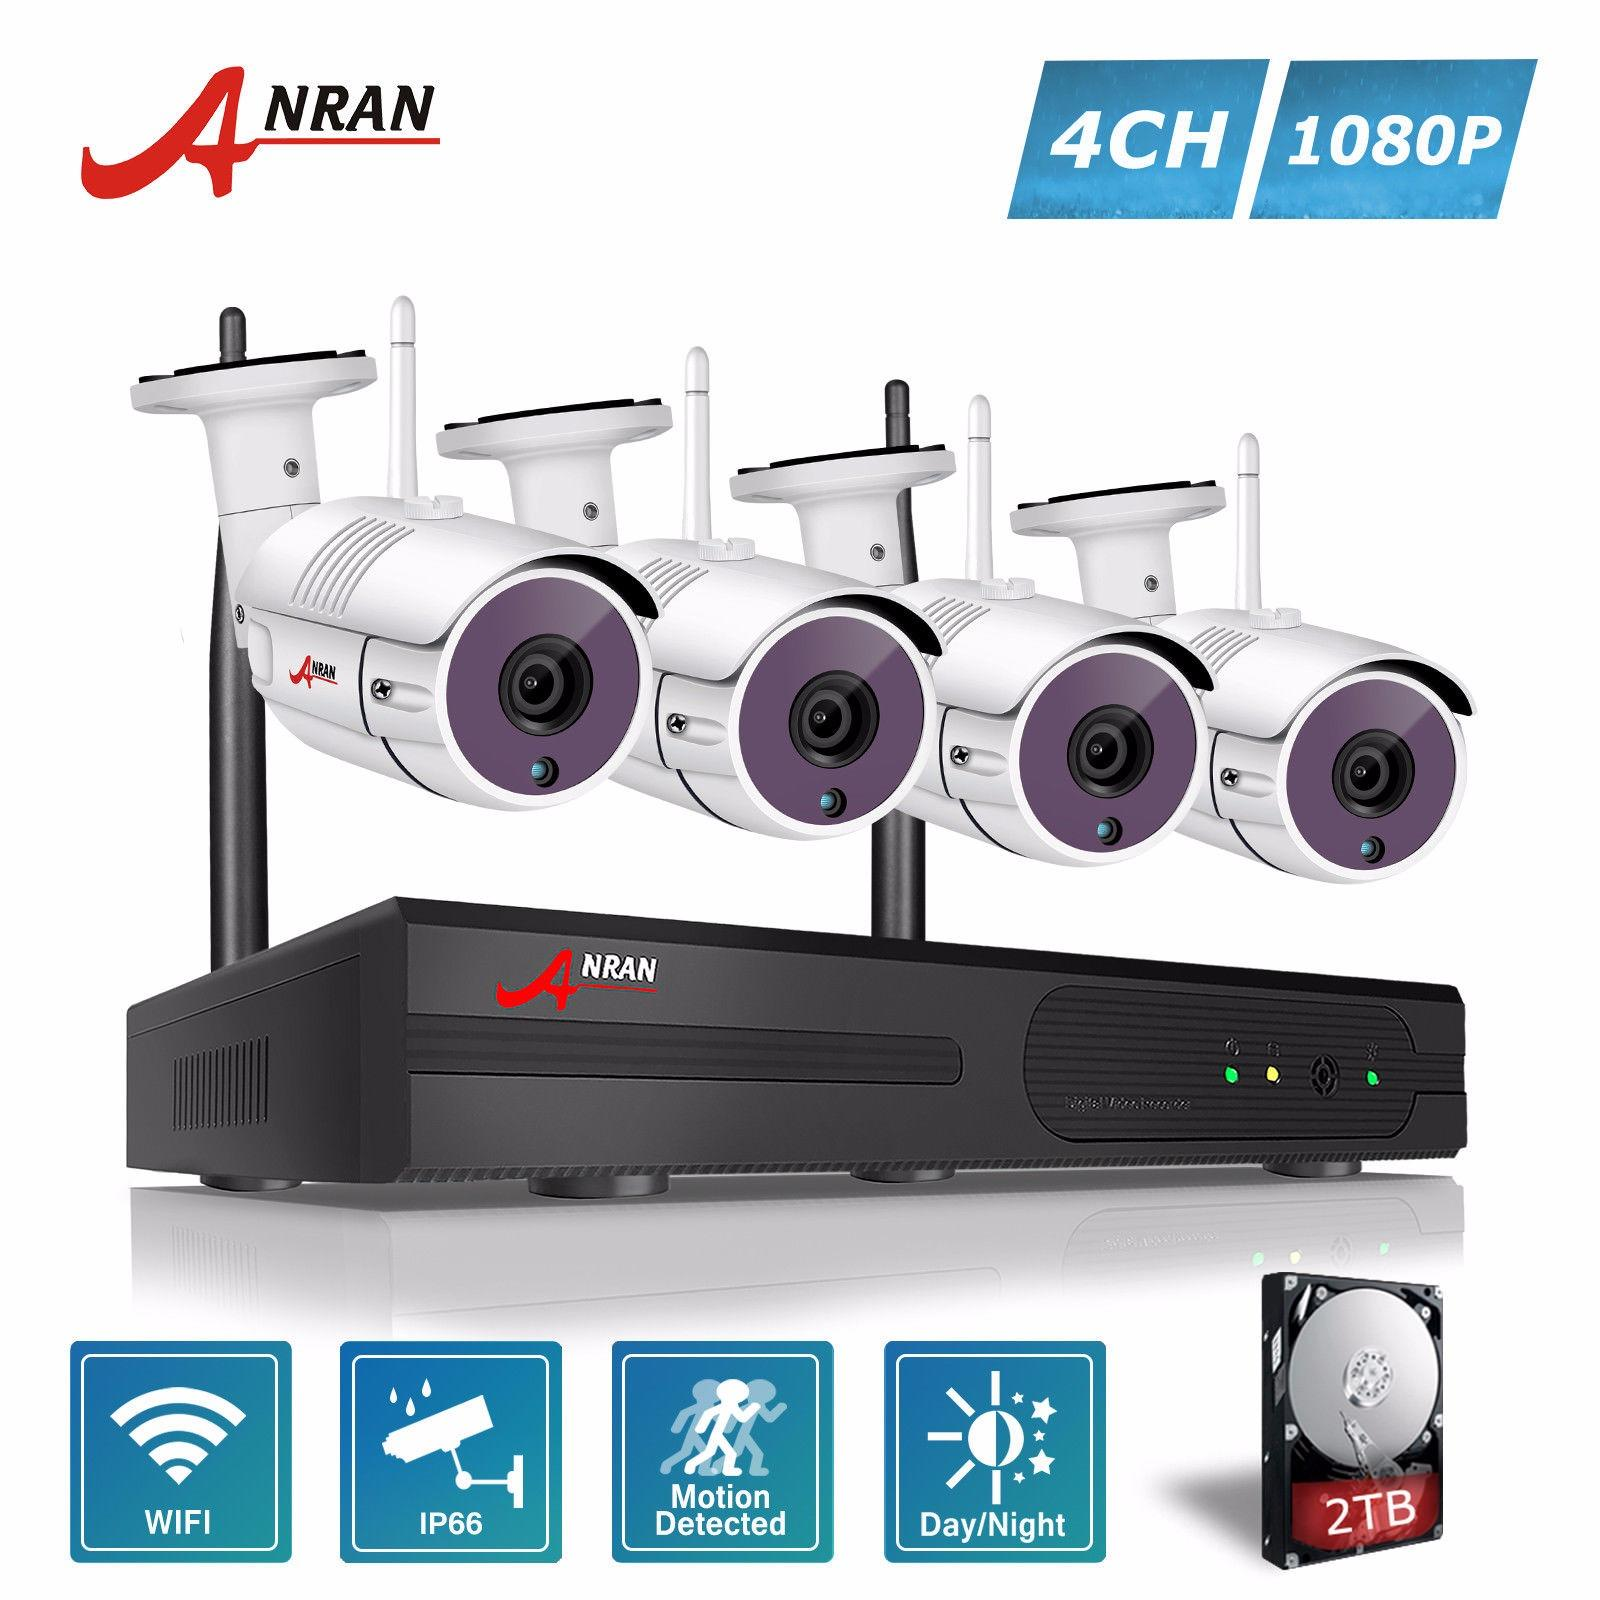 Harga Anran 4Ch Wireless Nvr Cctv Kit P2P 1080P Hd Outdoor Wifi Mini Ip Camera 36Ir Security Surveillance System Yang Murah Dan Bagus